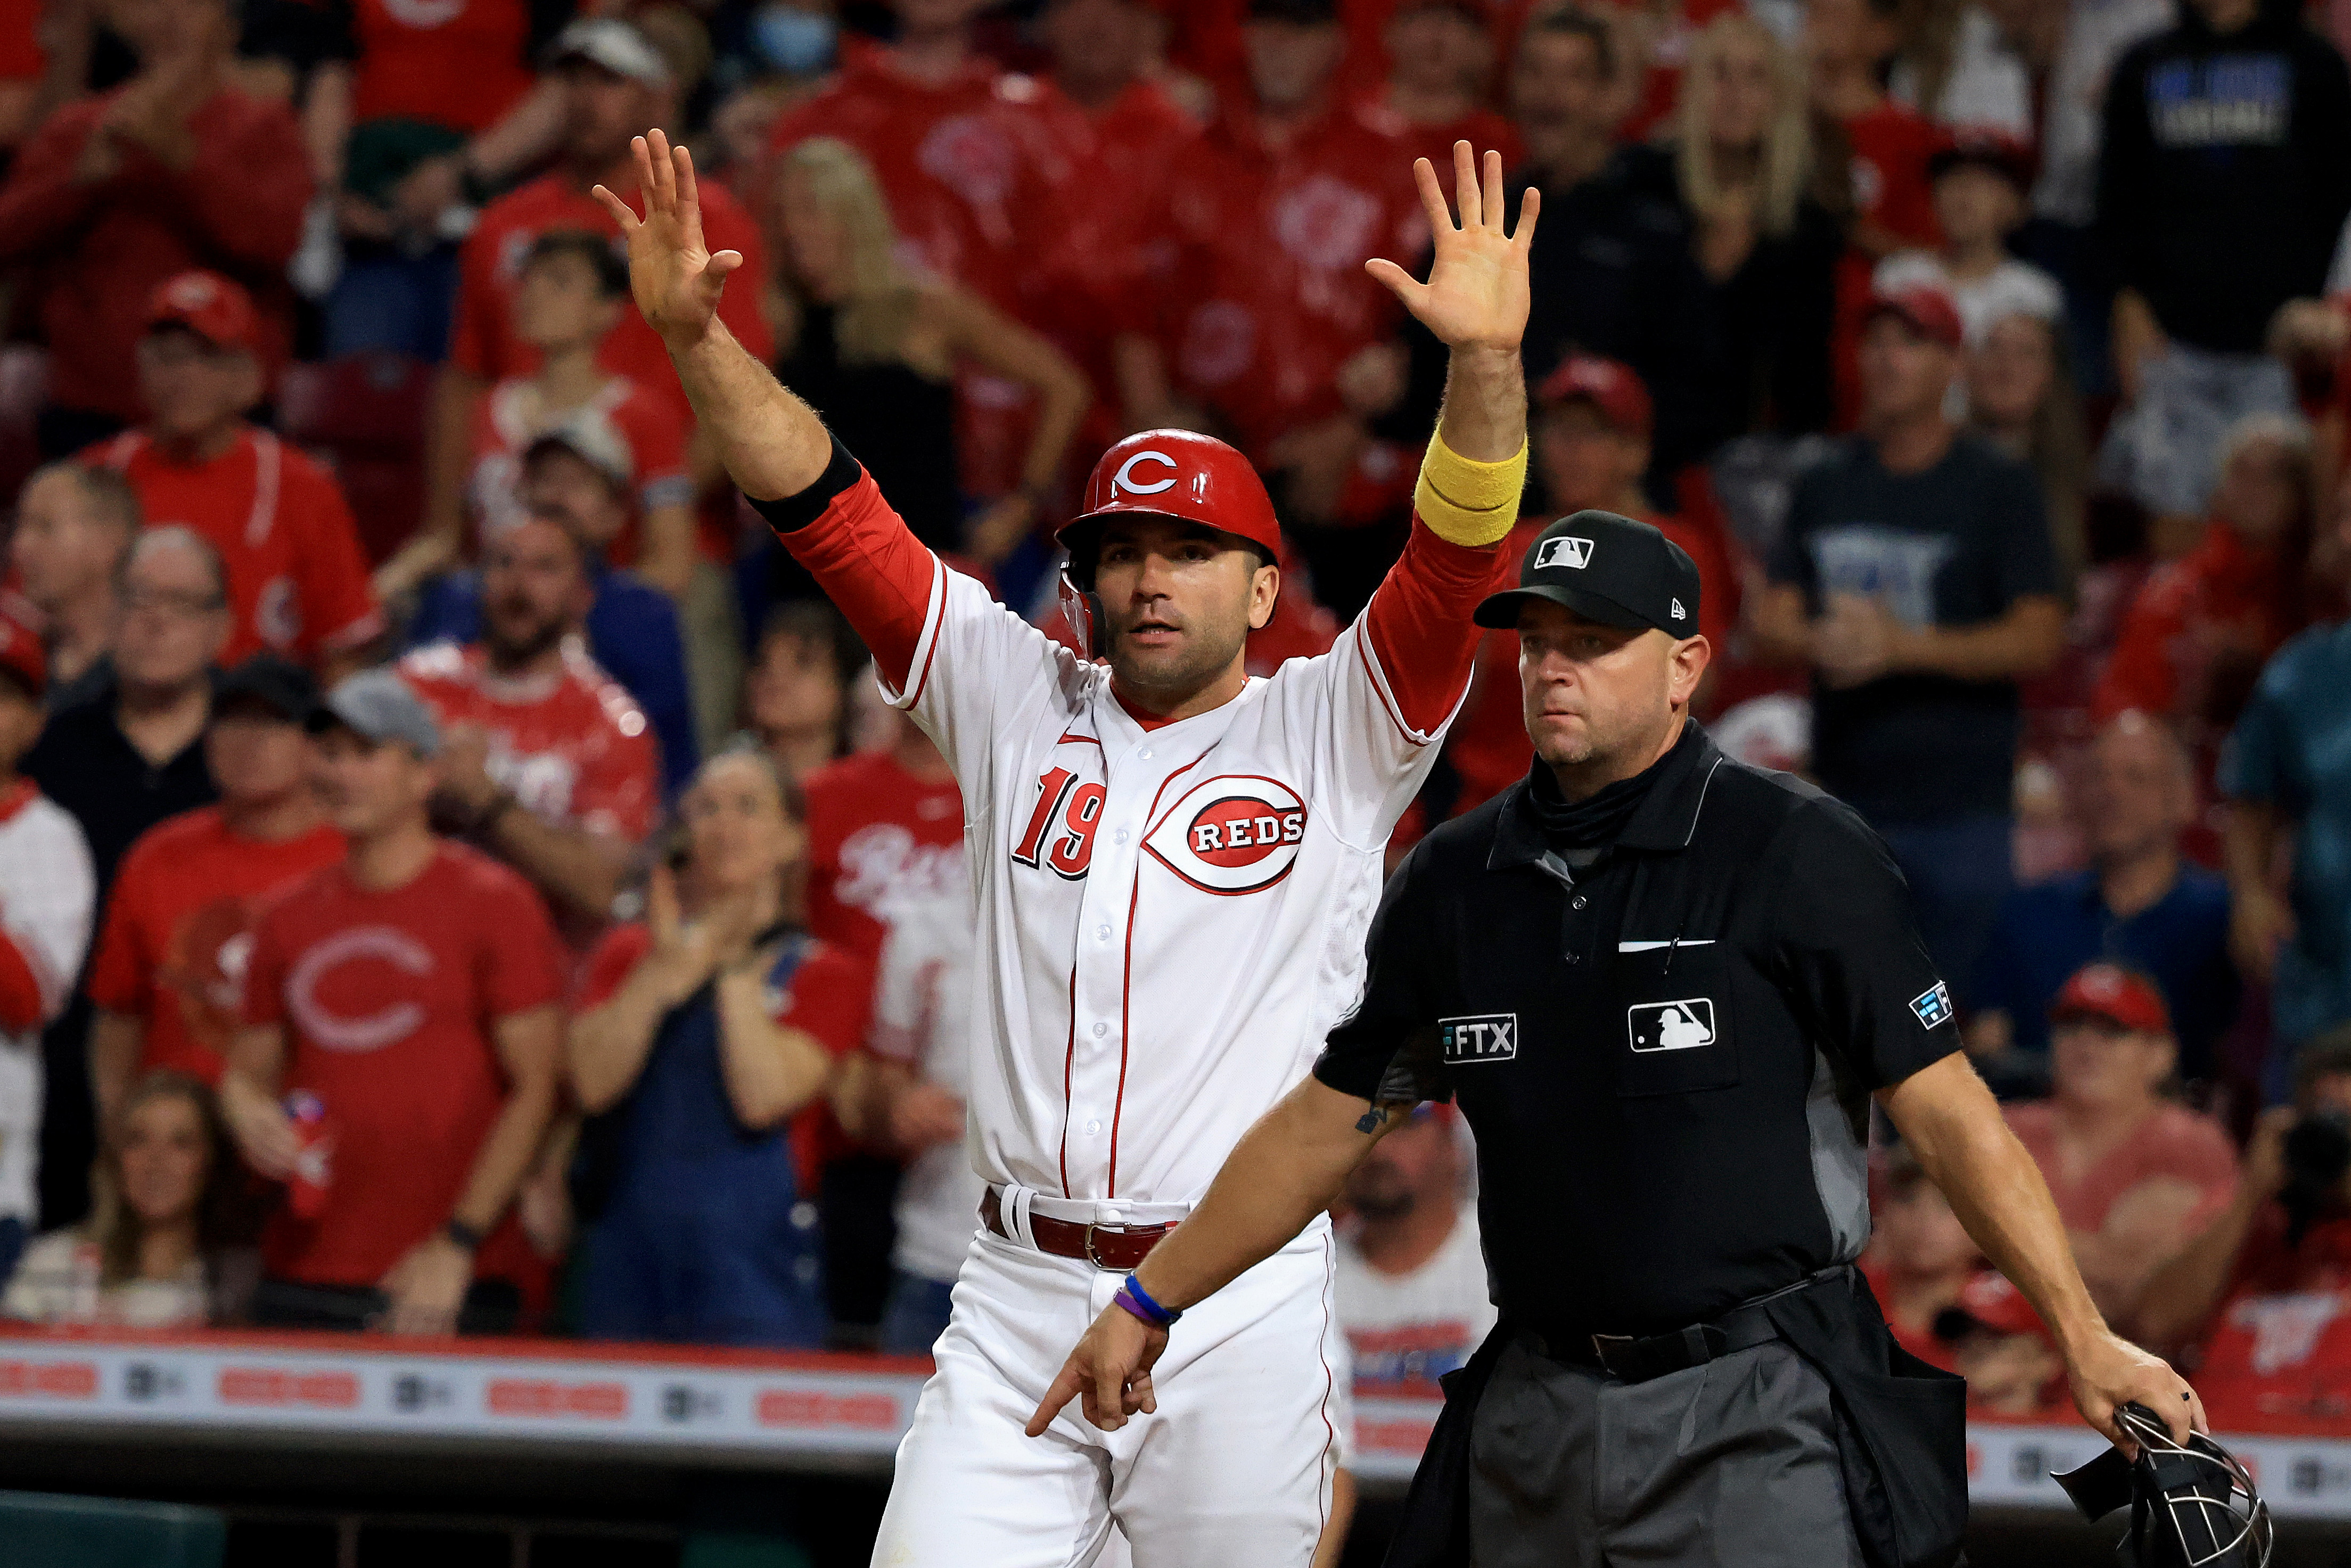 Joey Votto of the Cincinnati Reds directs his teammates during the seventh inning in the game against the Detroit Tigers at Great American Ball Park on September 04, 2021 in Cincinnati, Ohio.